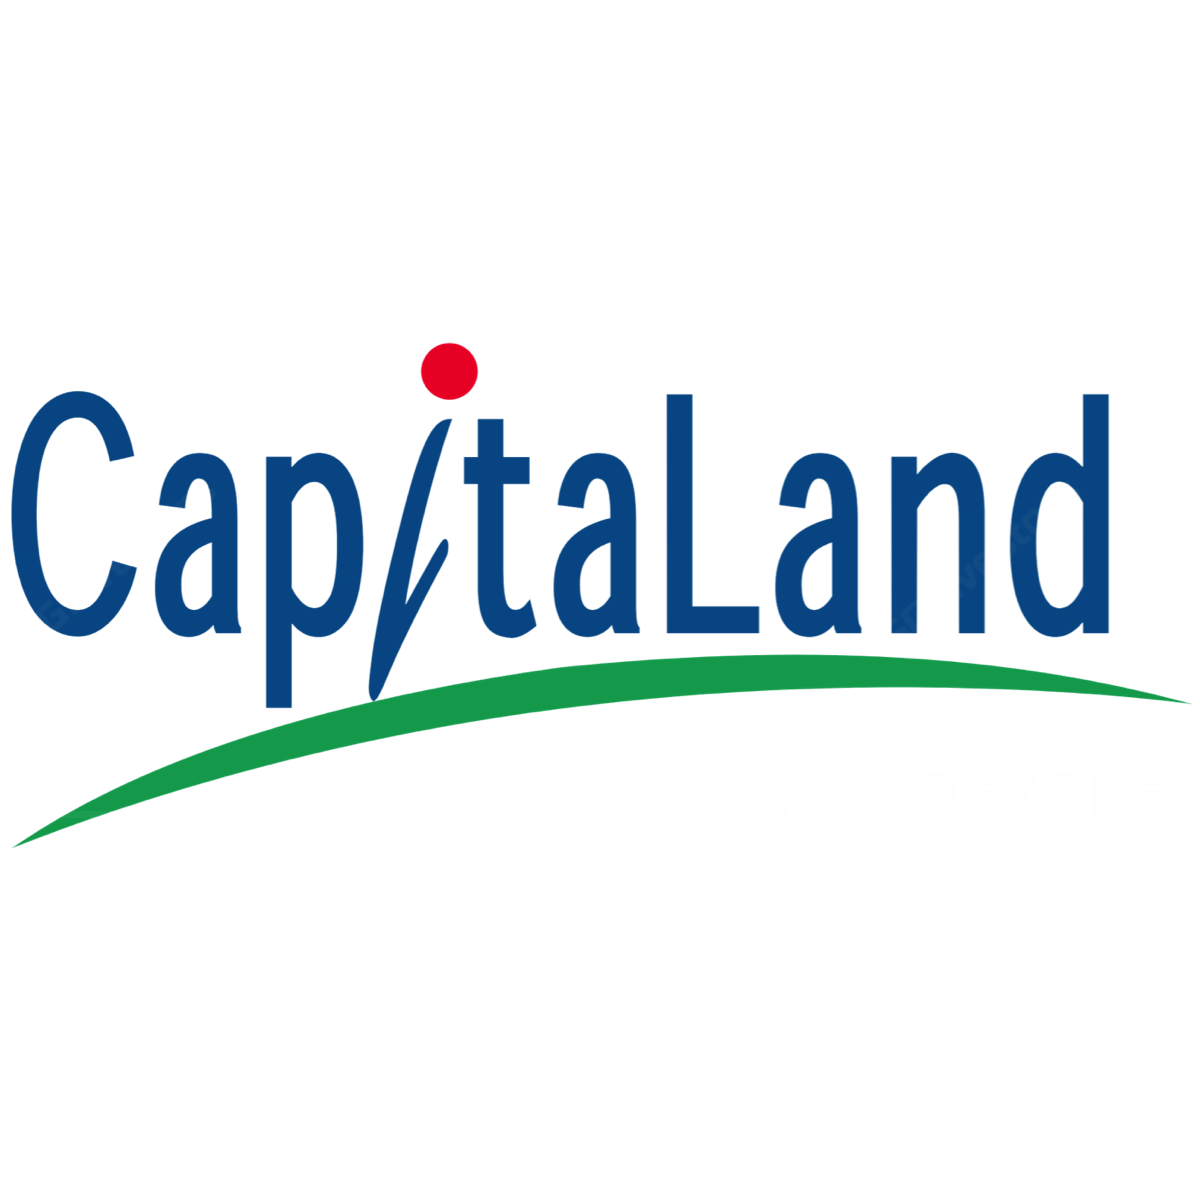 CapitaLand (CAPL SP) - UOB Kay Hian 2017-08-04: 2Q17 Prudent Aggression